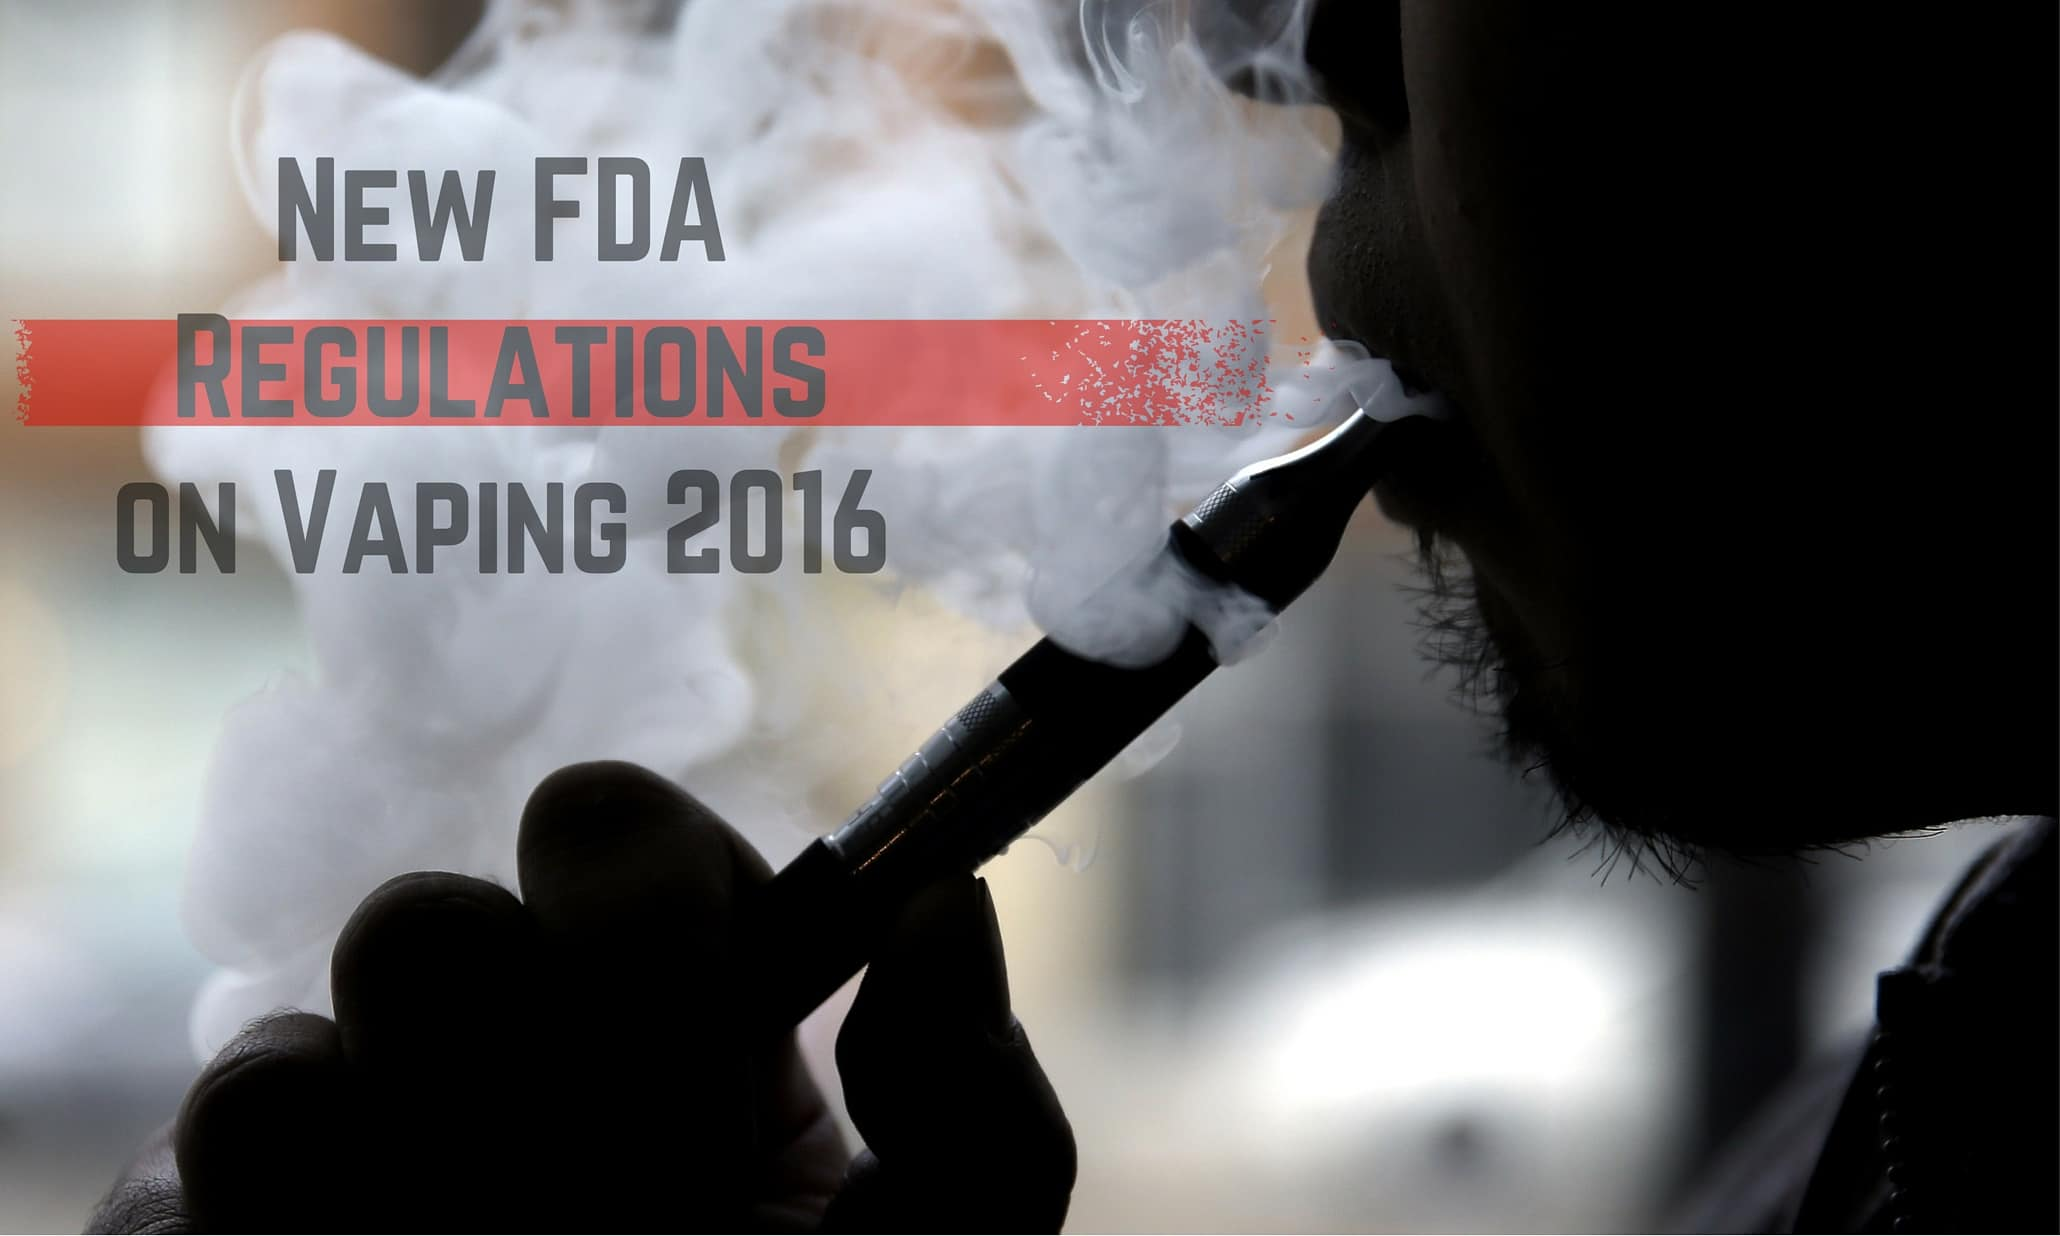 New FDA Regulations on Vaping 2016